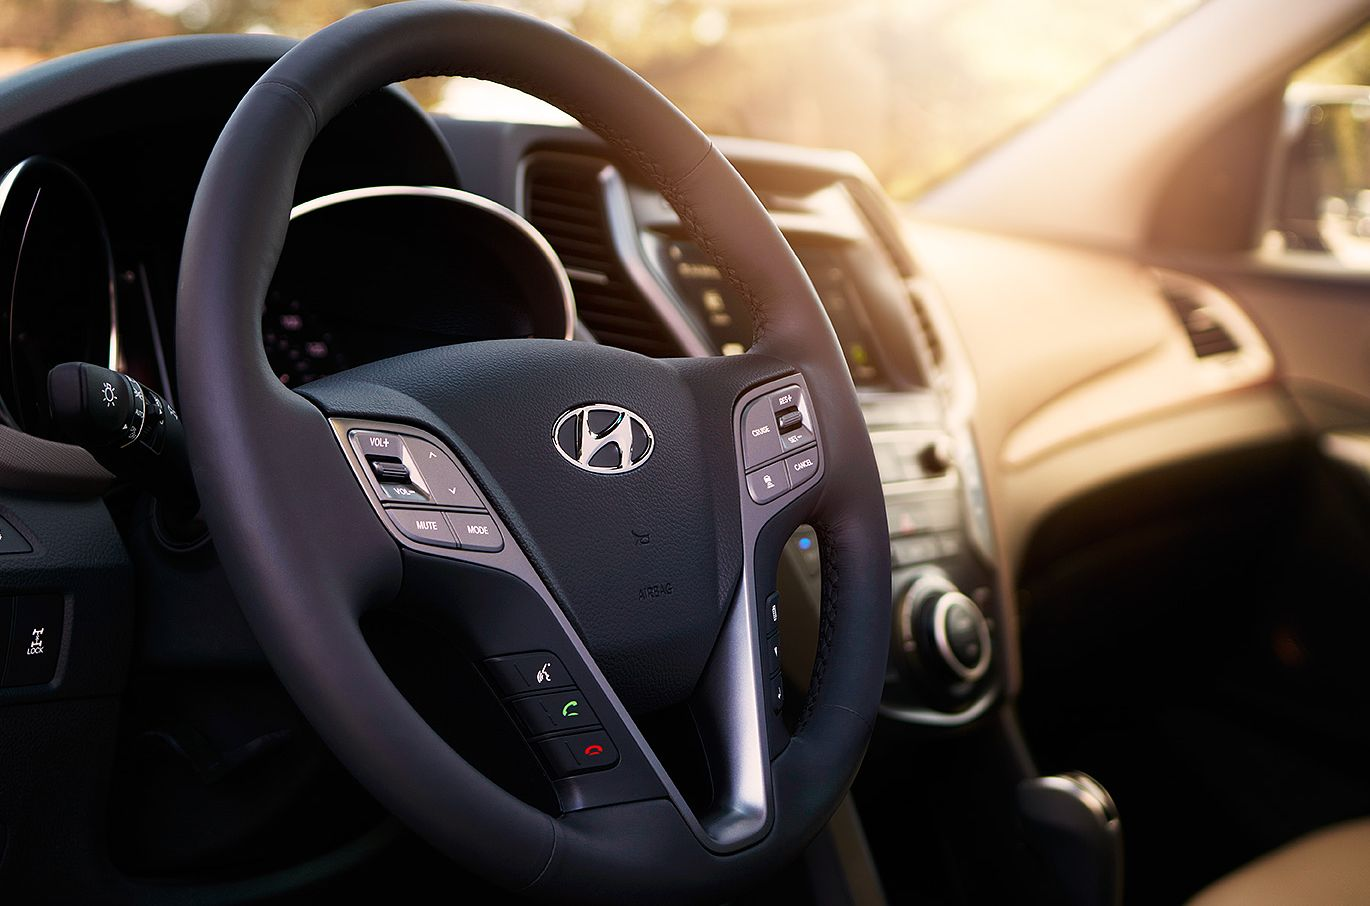 Hyundai Santa Fe Sport Steering Wheel-Mounted Controls